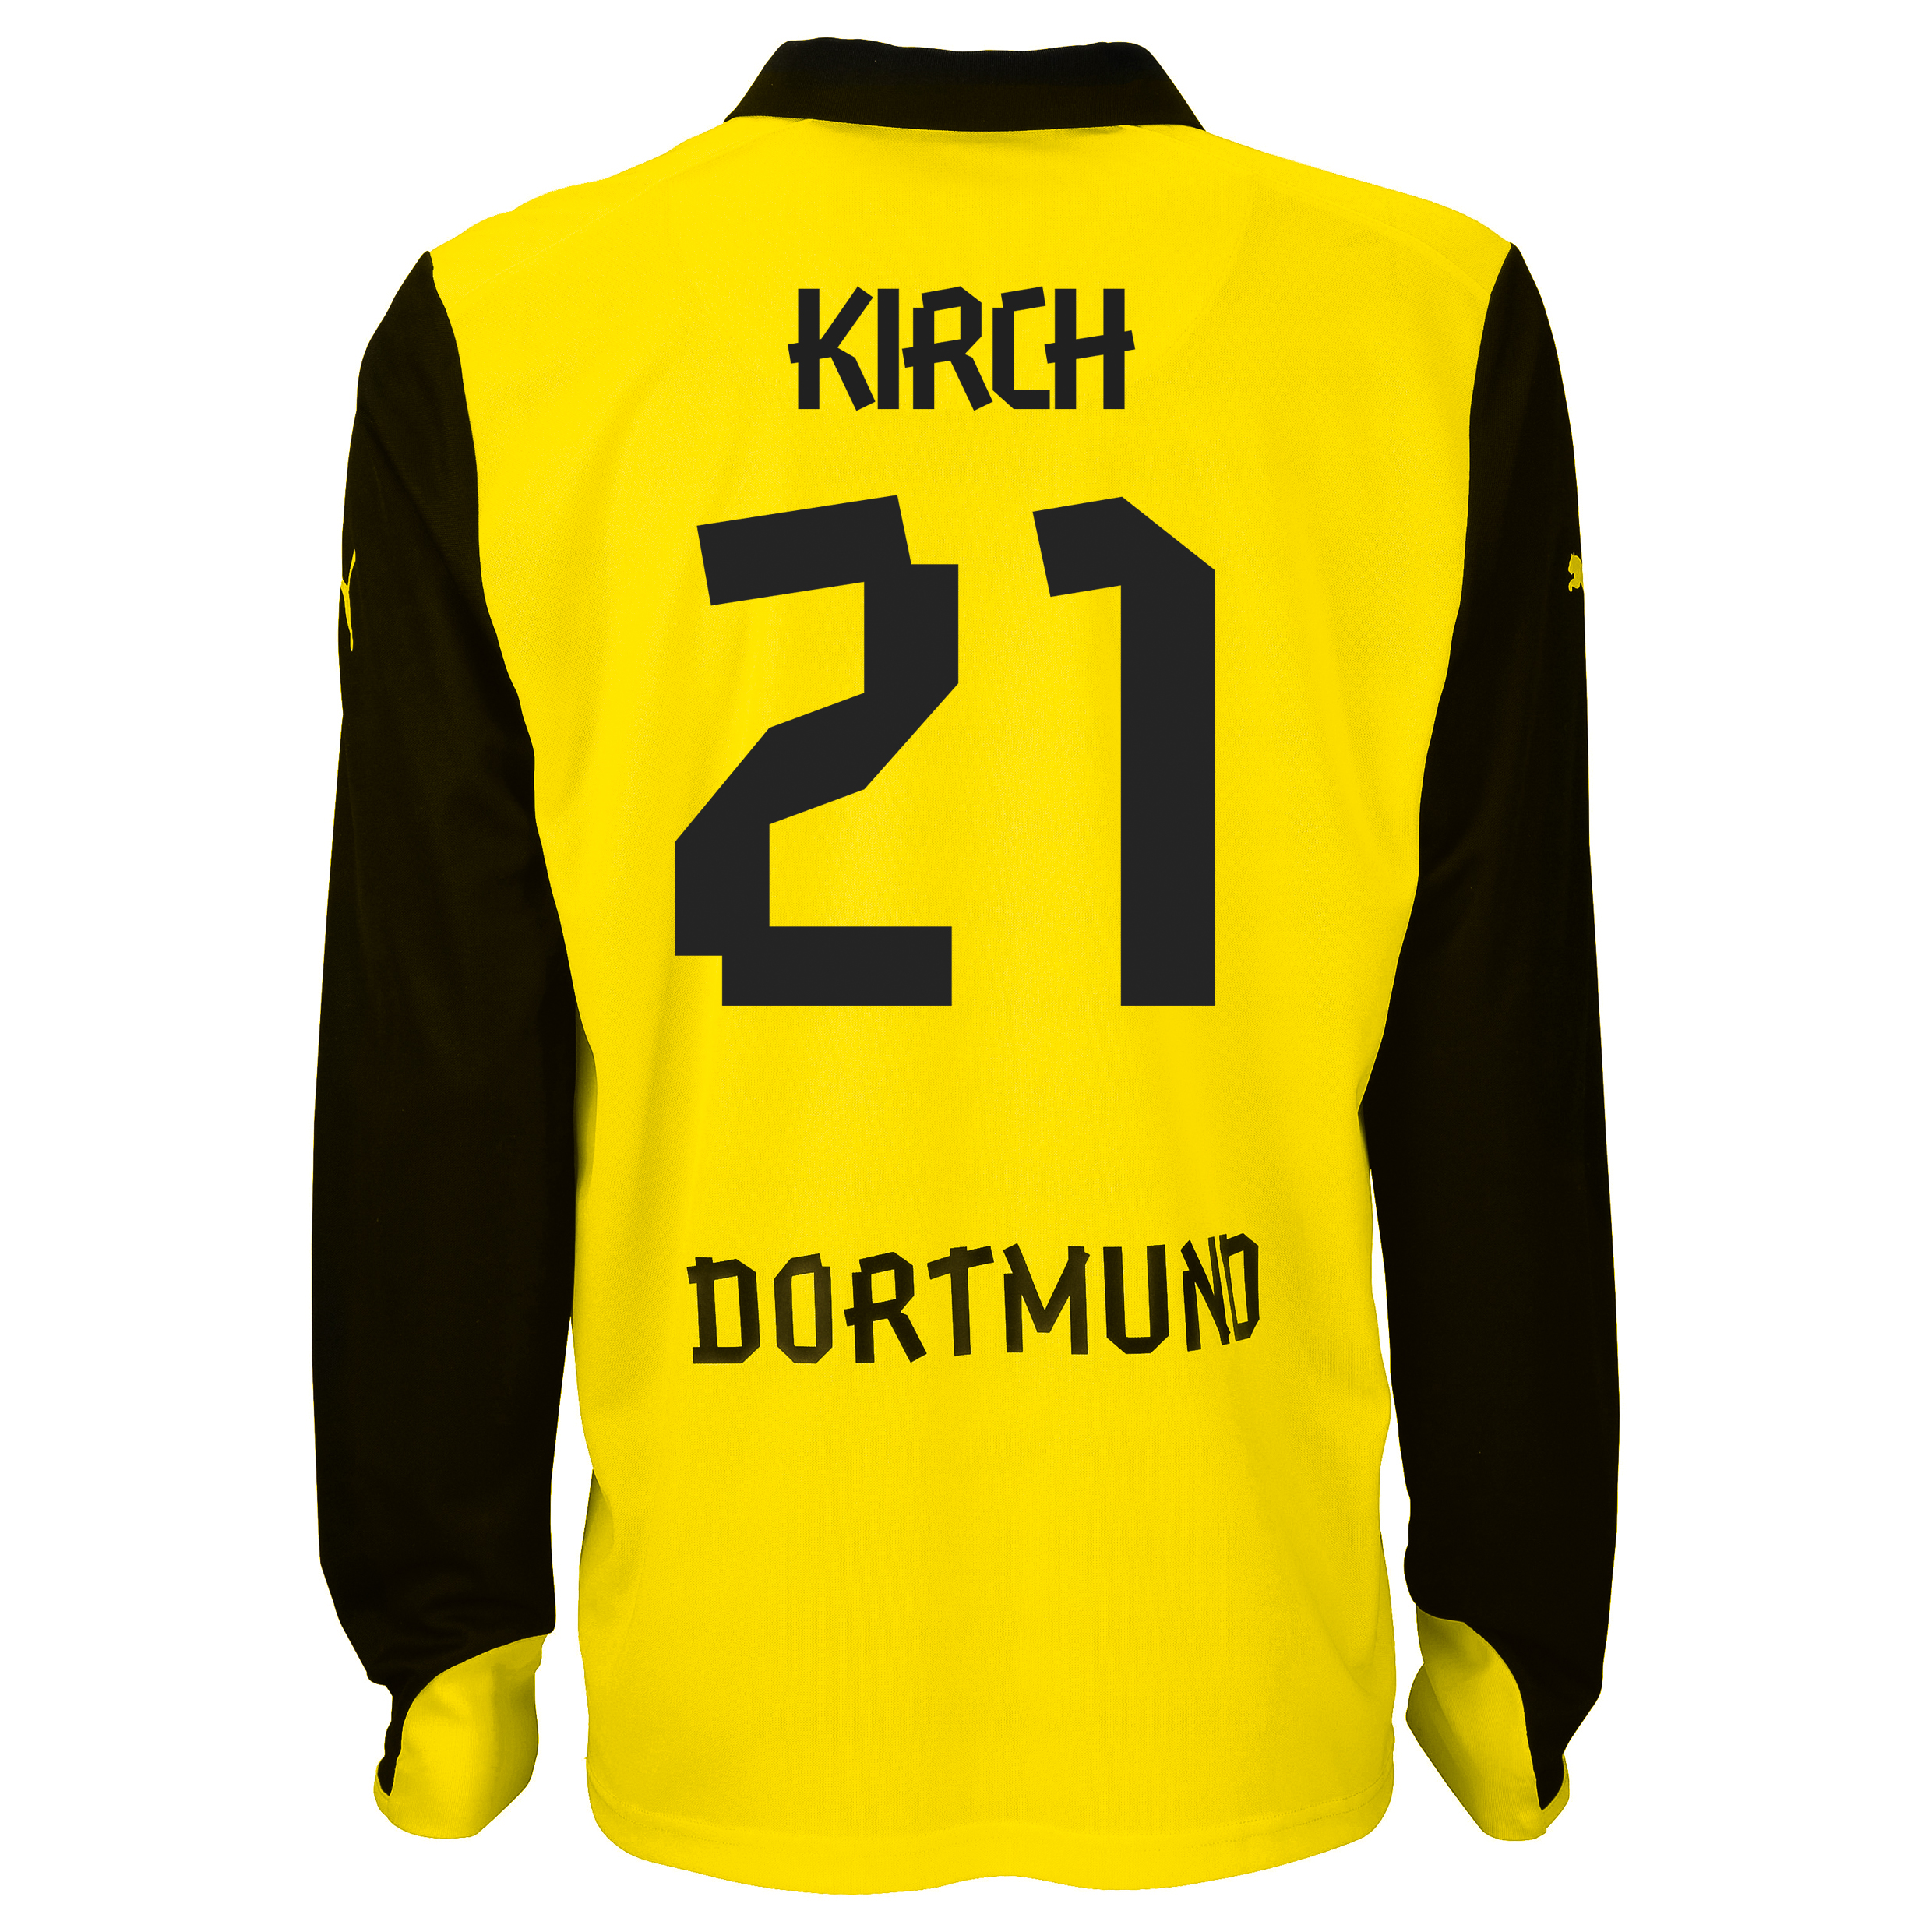 BVB International Home Shirt 2013/14 - Long Sleeve with Kirch 21 printing